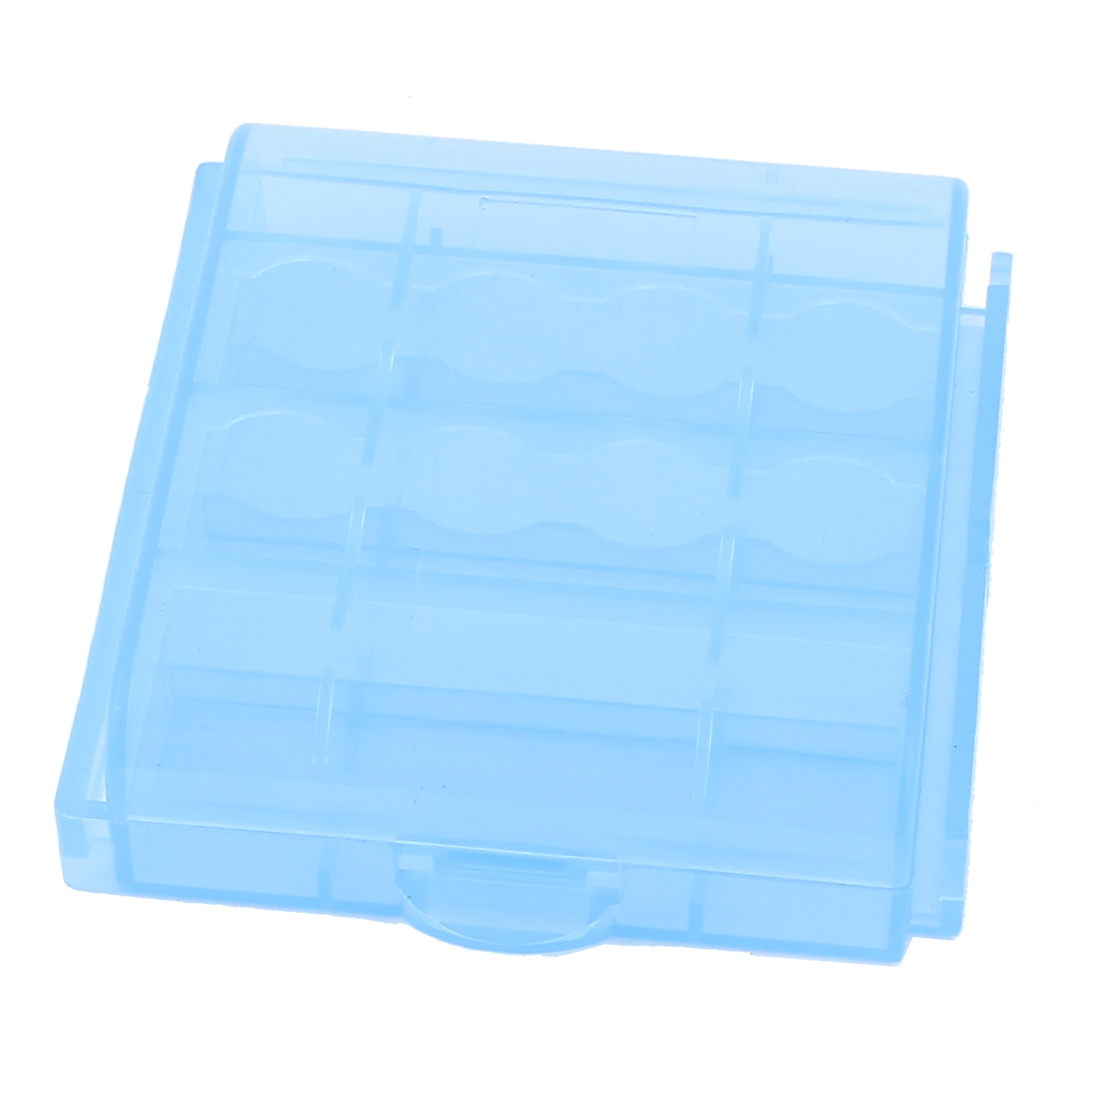 Hard Plastic Portable Case Holder Storage Box Blue for AA AAA Battery Batteries